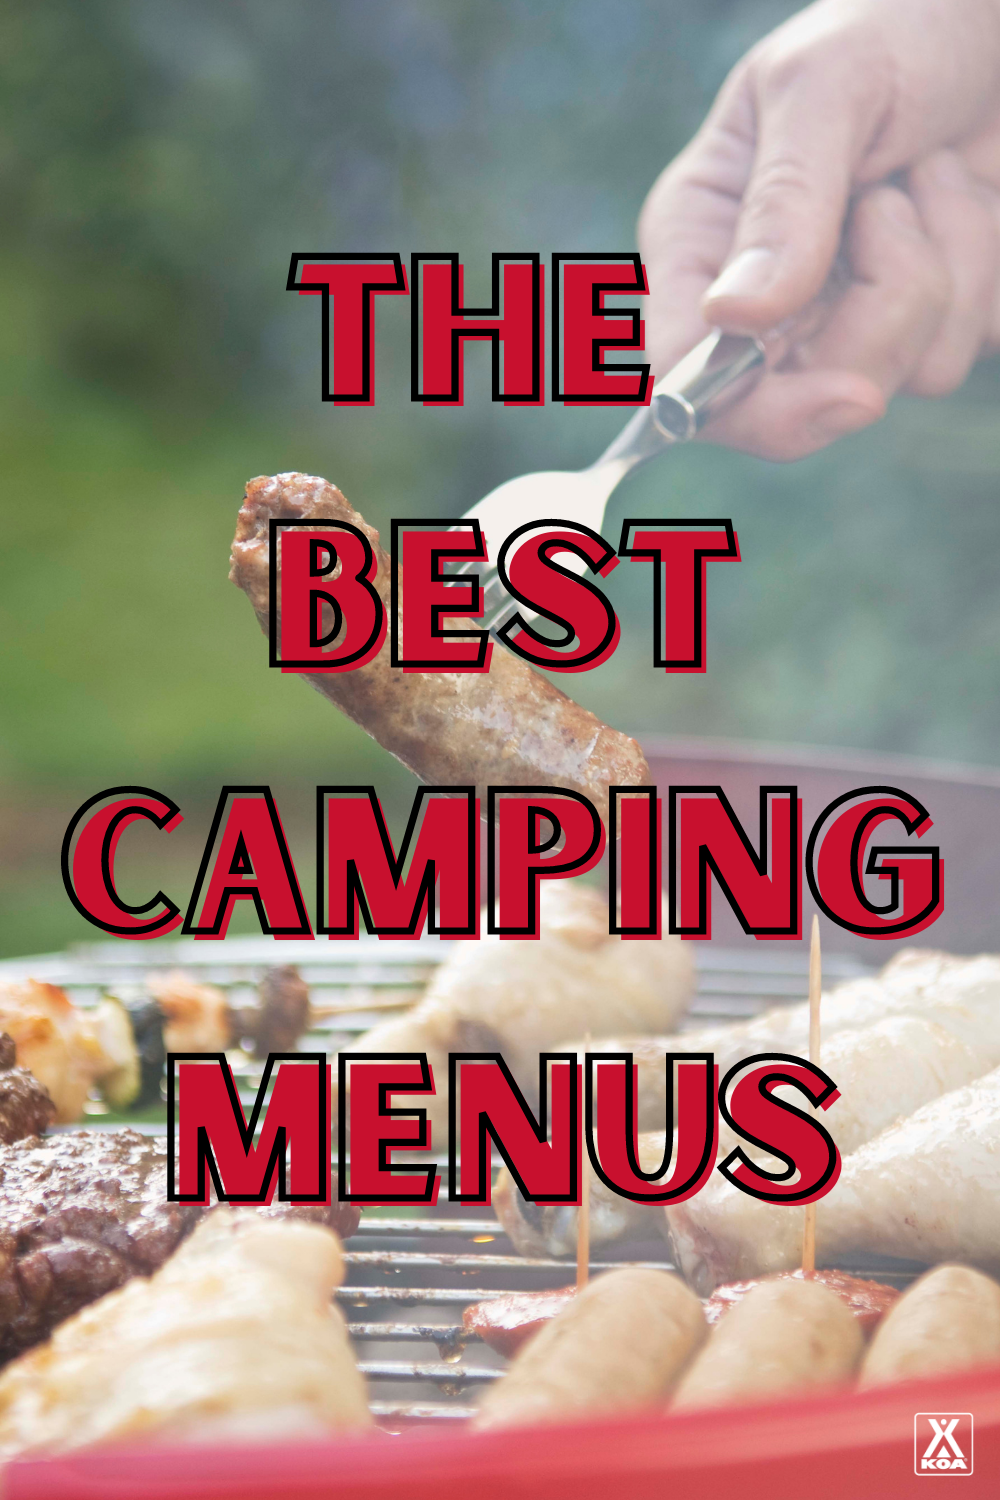 Find the perfect camping menu for your next family adventure. From kid-friendly options to farm-to-table menu ideas, there's something for everyone!